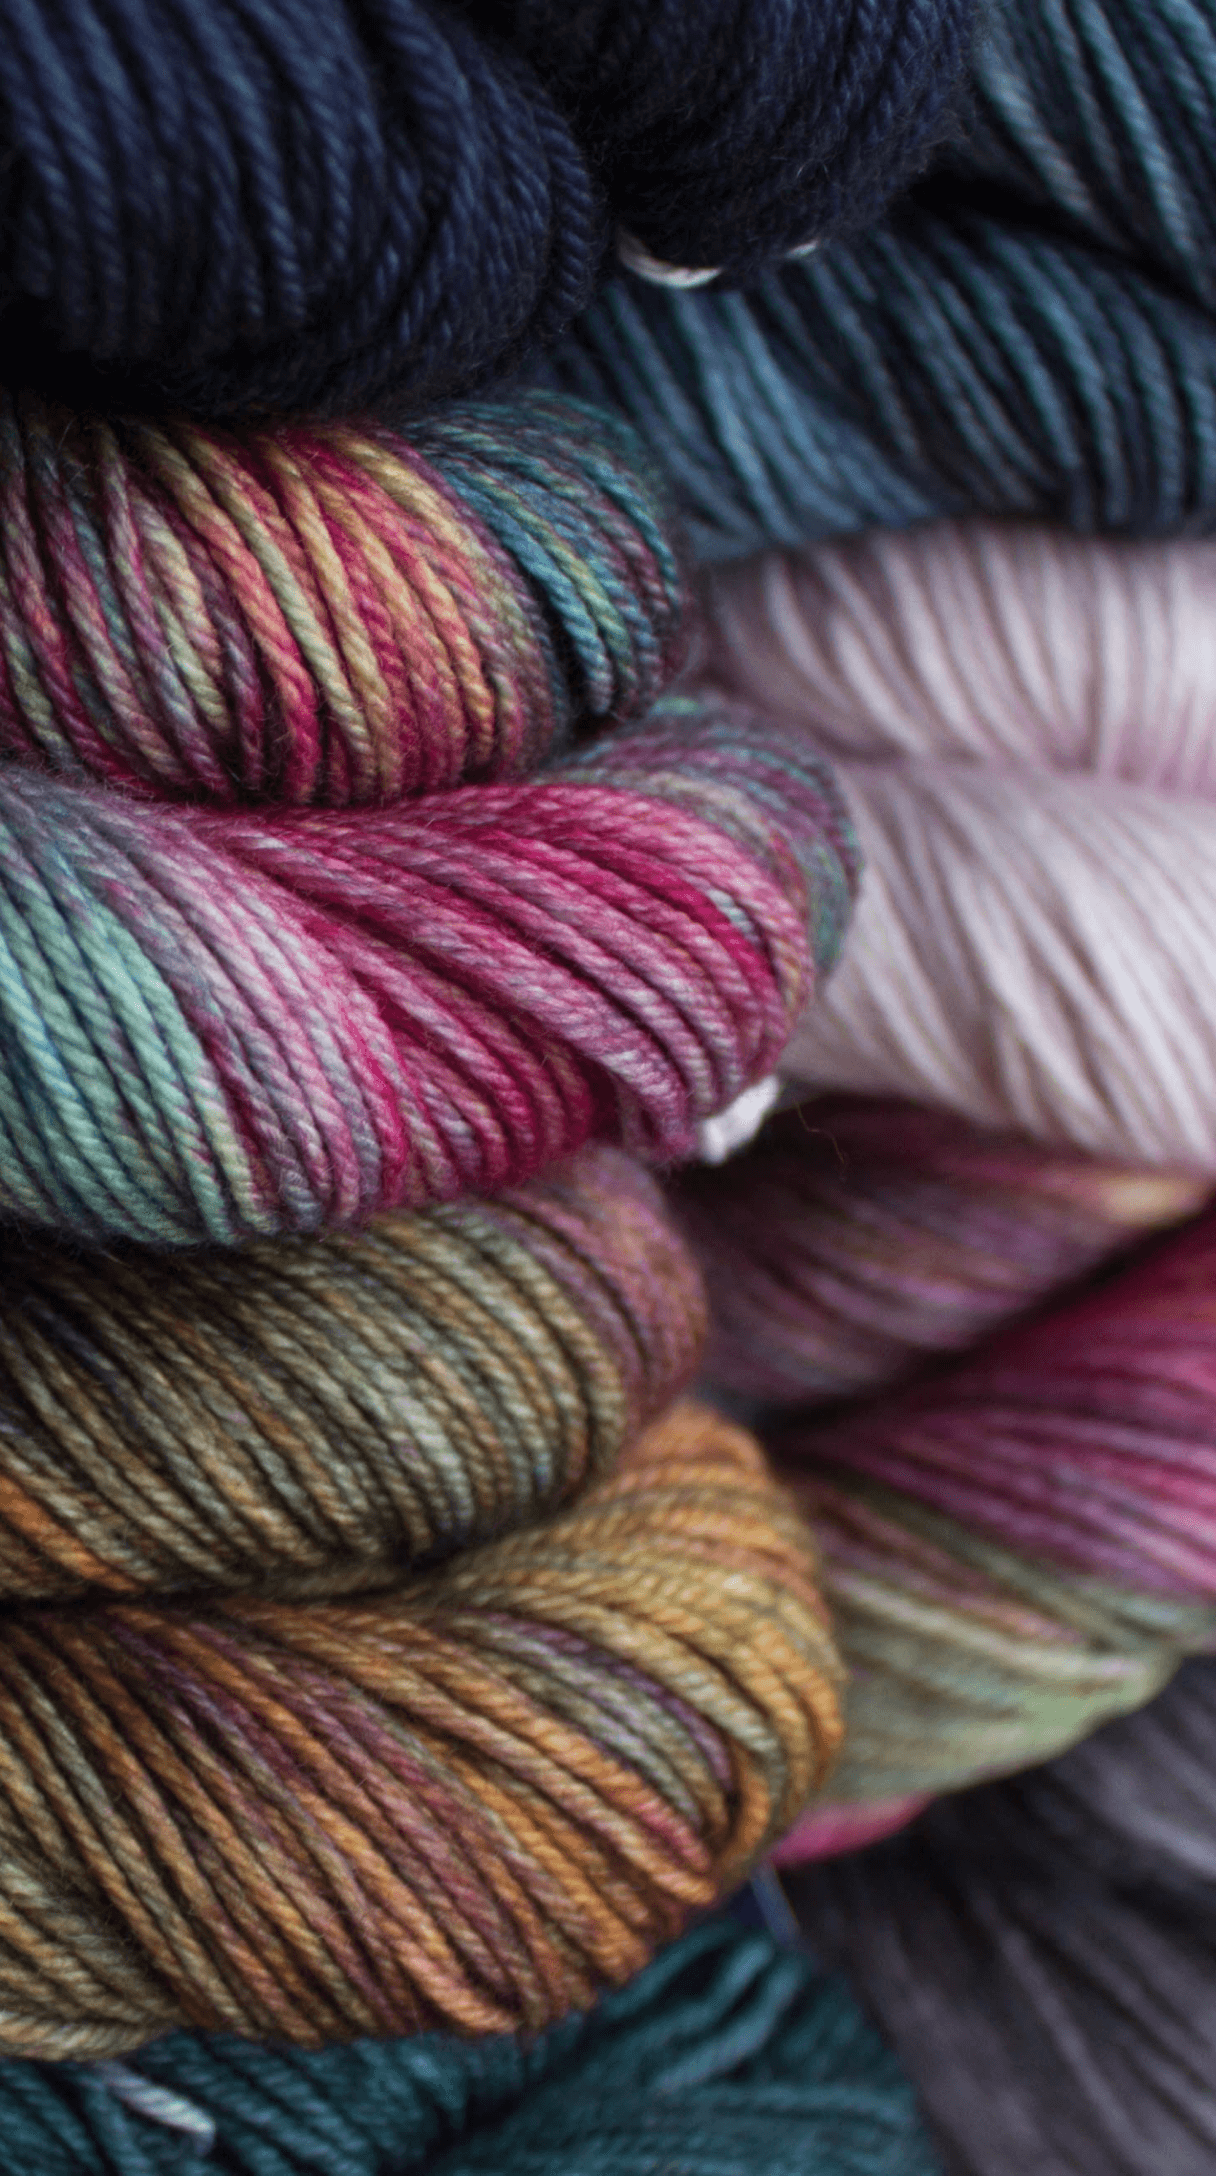 New caprino close up,           our lastest yarn, a blend of luxury fibers;           Cashmere and Superfine Merino